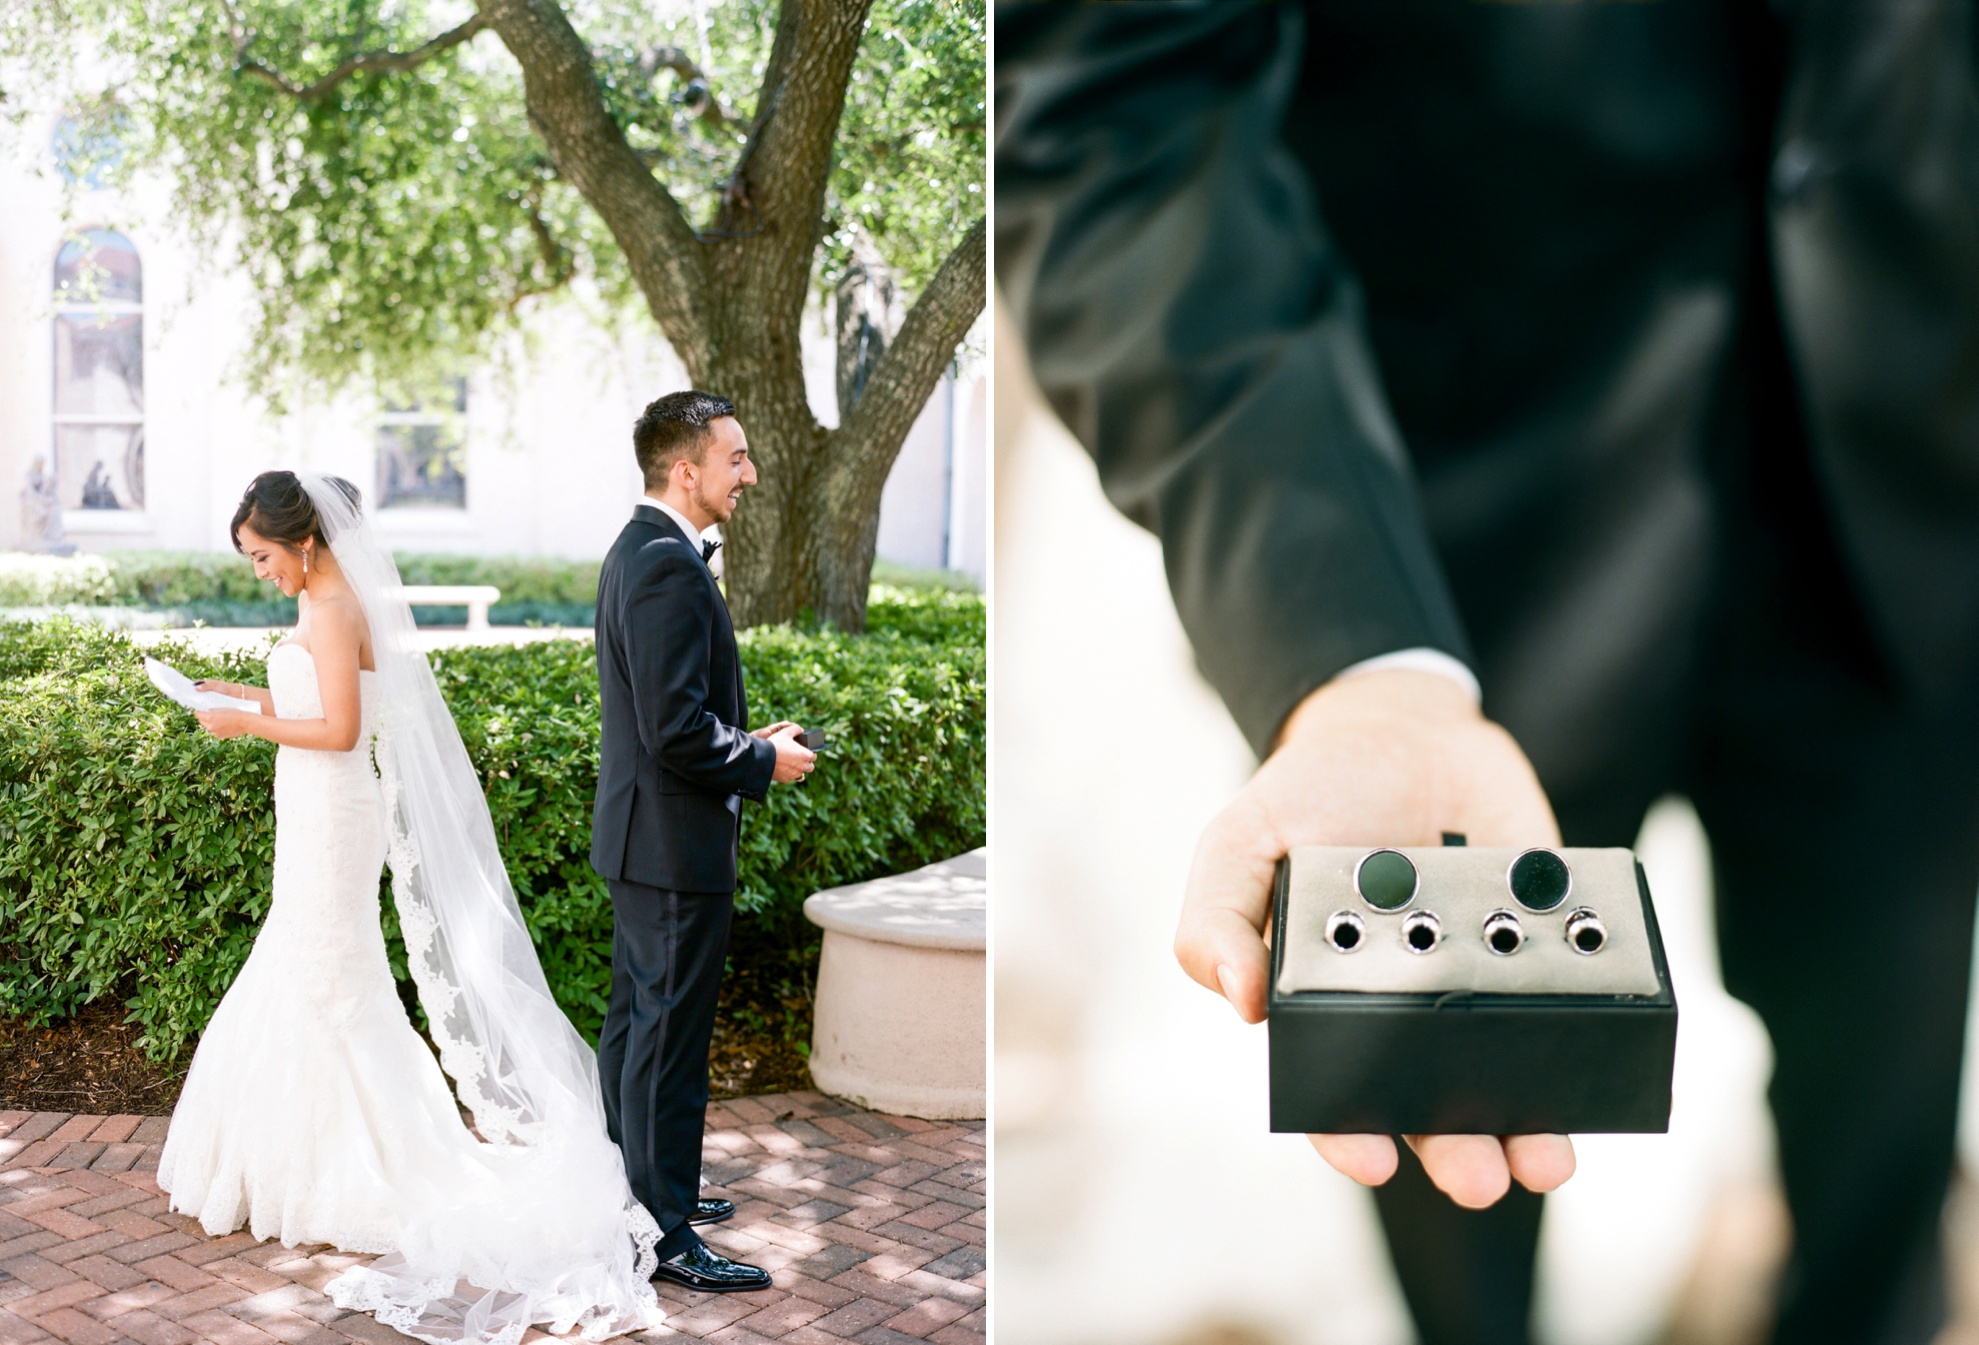 St.-Anne-Catholic-Church-Wedding-Houston-Ceremony-Photographer-Dana-Fernandez-Photography-5.jpg